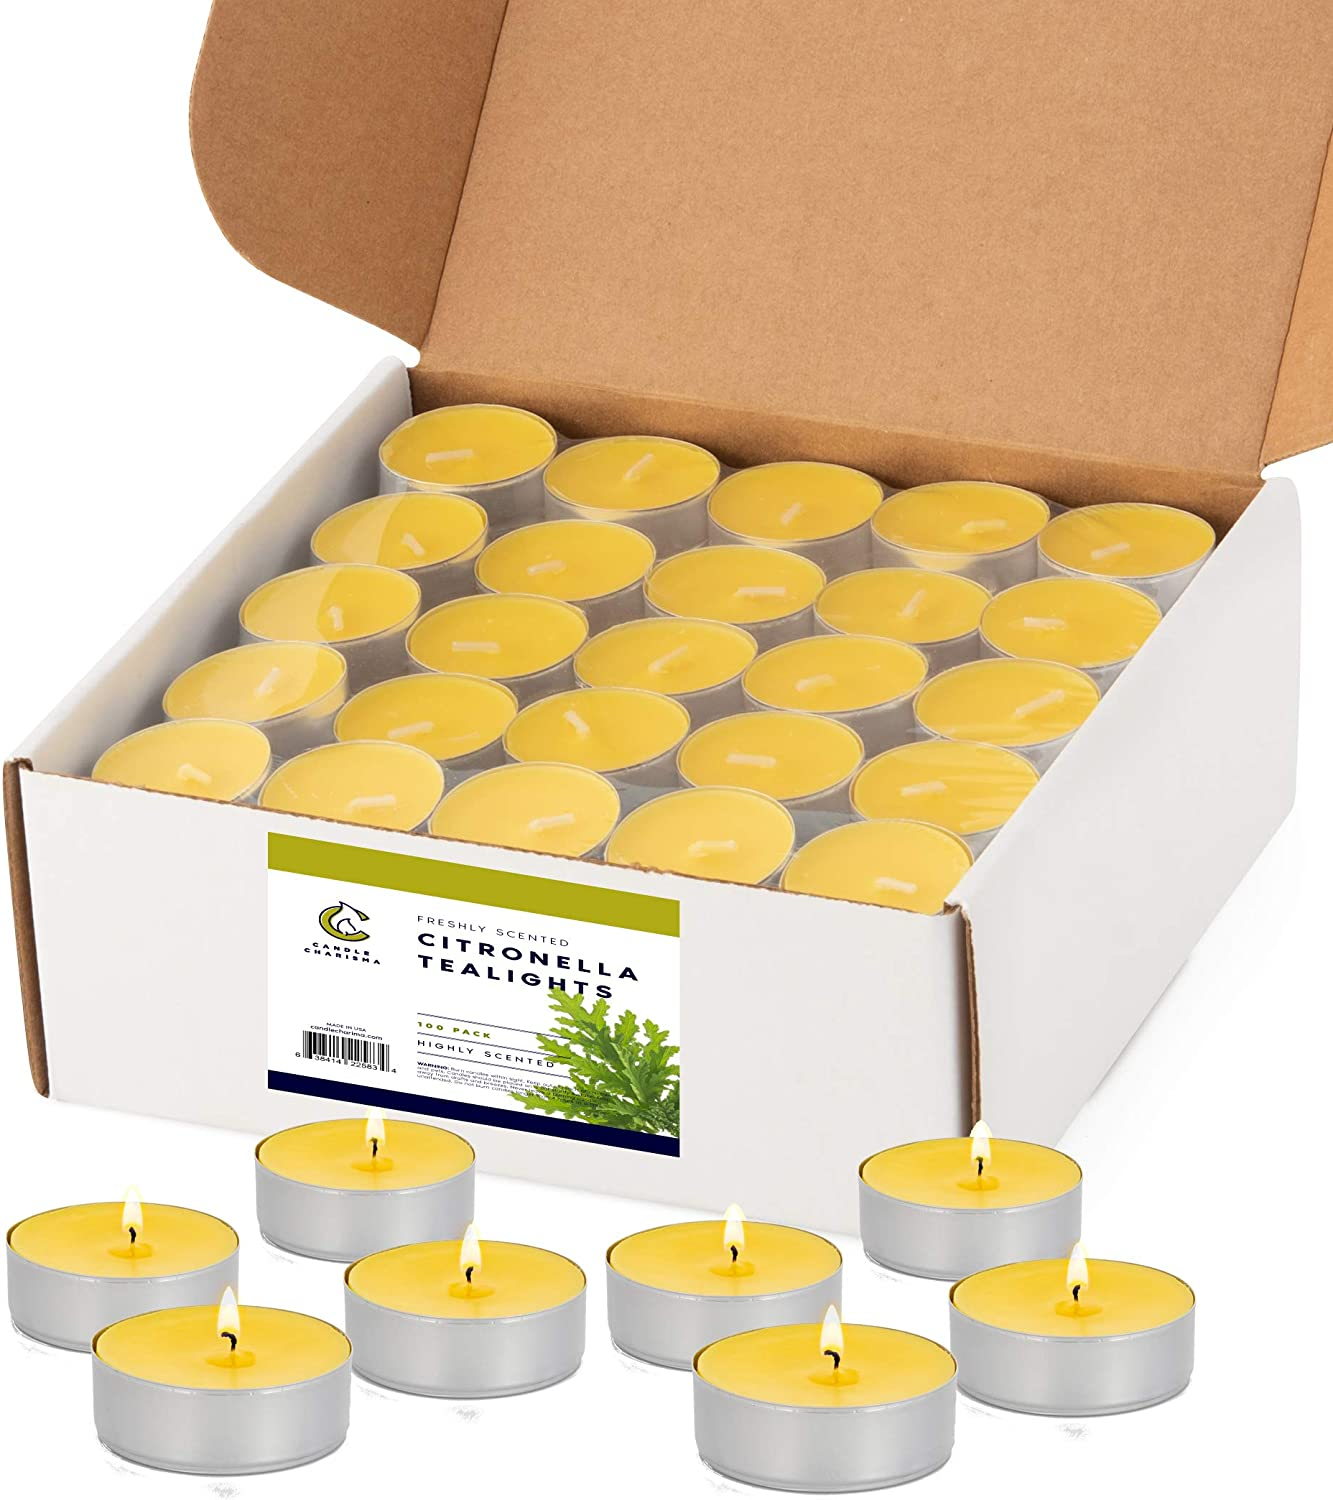 100 Citronella Oil Wax Tealight Candles Bulk - Anti Mosquito Repellent - Deet Free - Yellow - Outdoor Indoor - Summer Candles - Made in USA